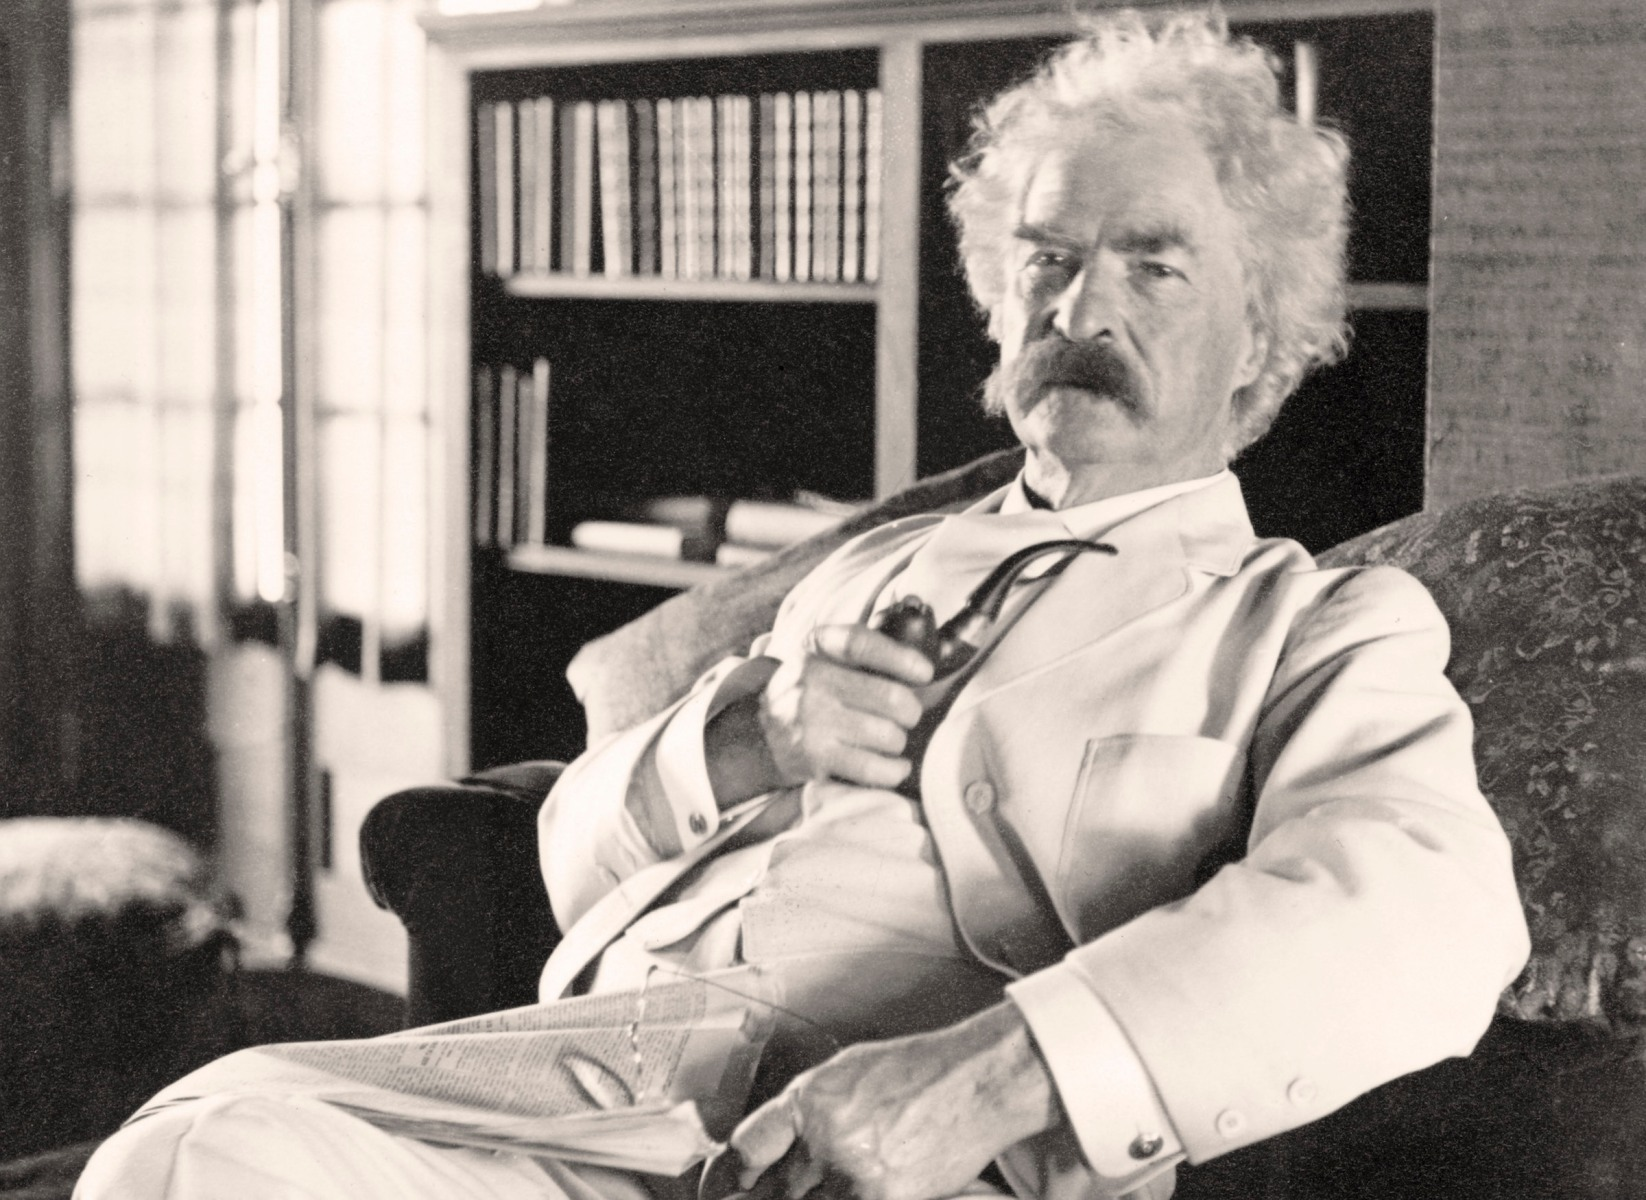 Samuel Langhorne Clemens 1835 to 1910 known by pen name Mark Twain American humorist, satirist, writer, and lecturer From photograph taken in his old age (Photo by Universal History Archive/Getty Images)